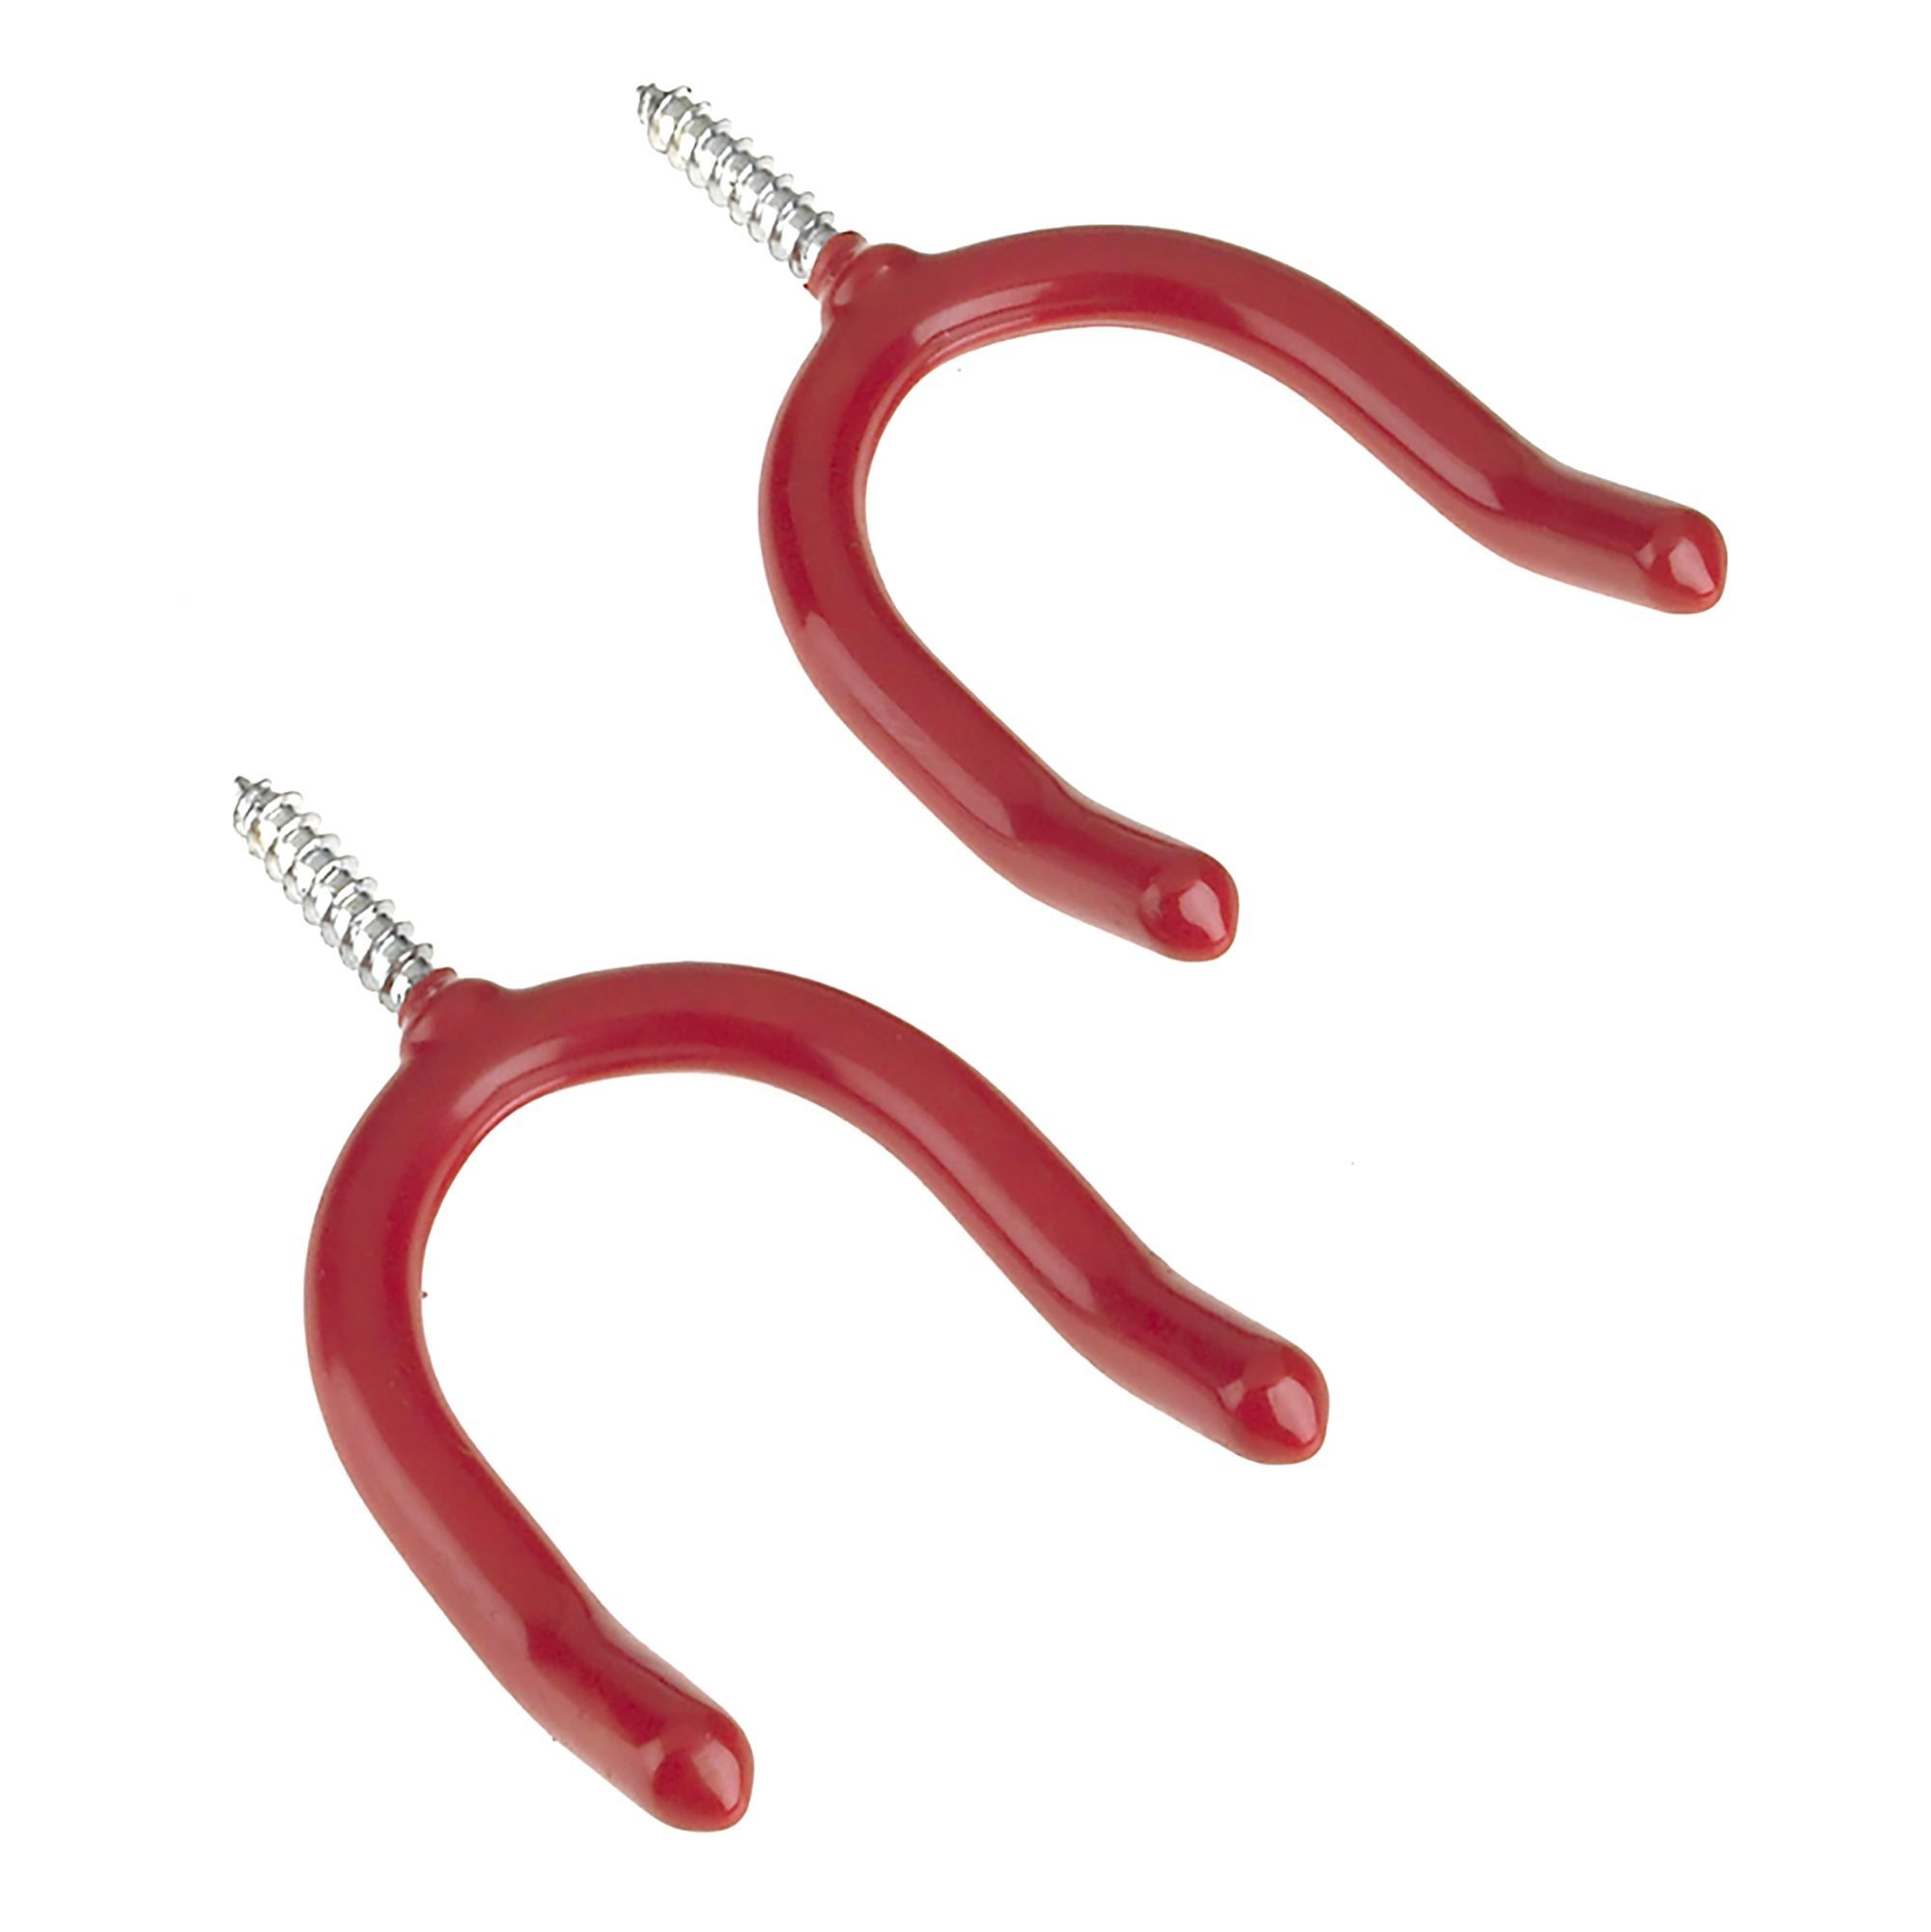 Rothley Red Steel Tool Storage Hooks Pack Of 2 Departments Diy At B Q Tool Steel Tool Storage Storage Hooks